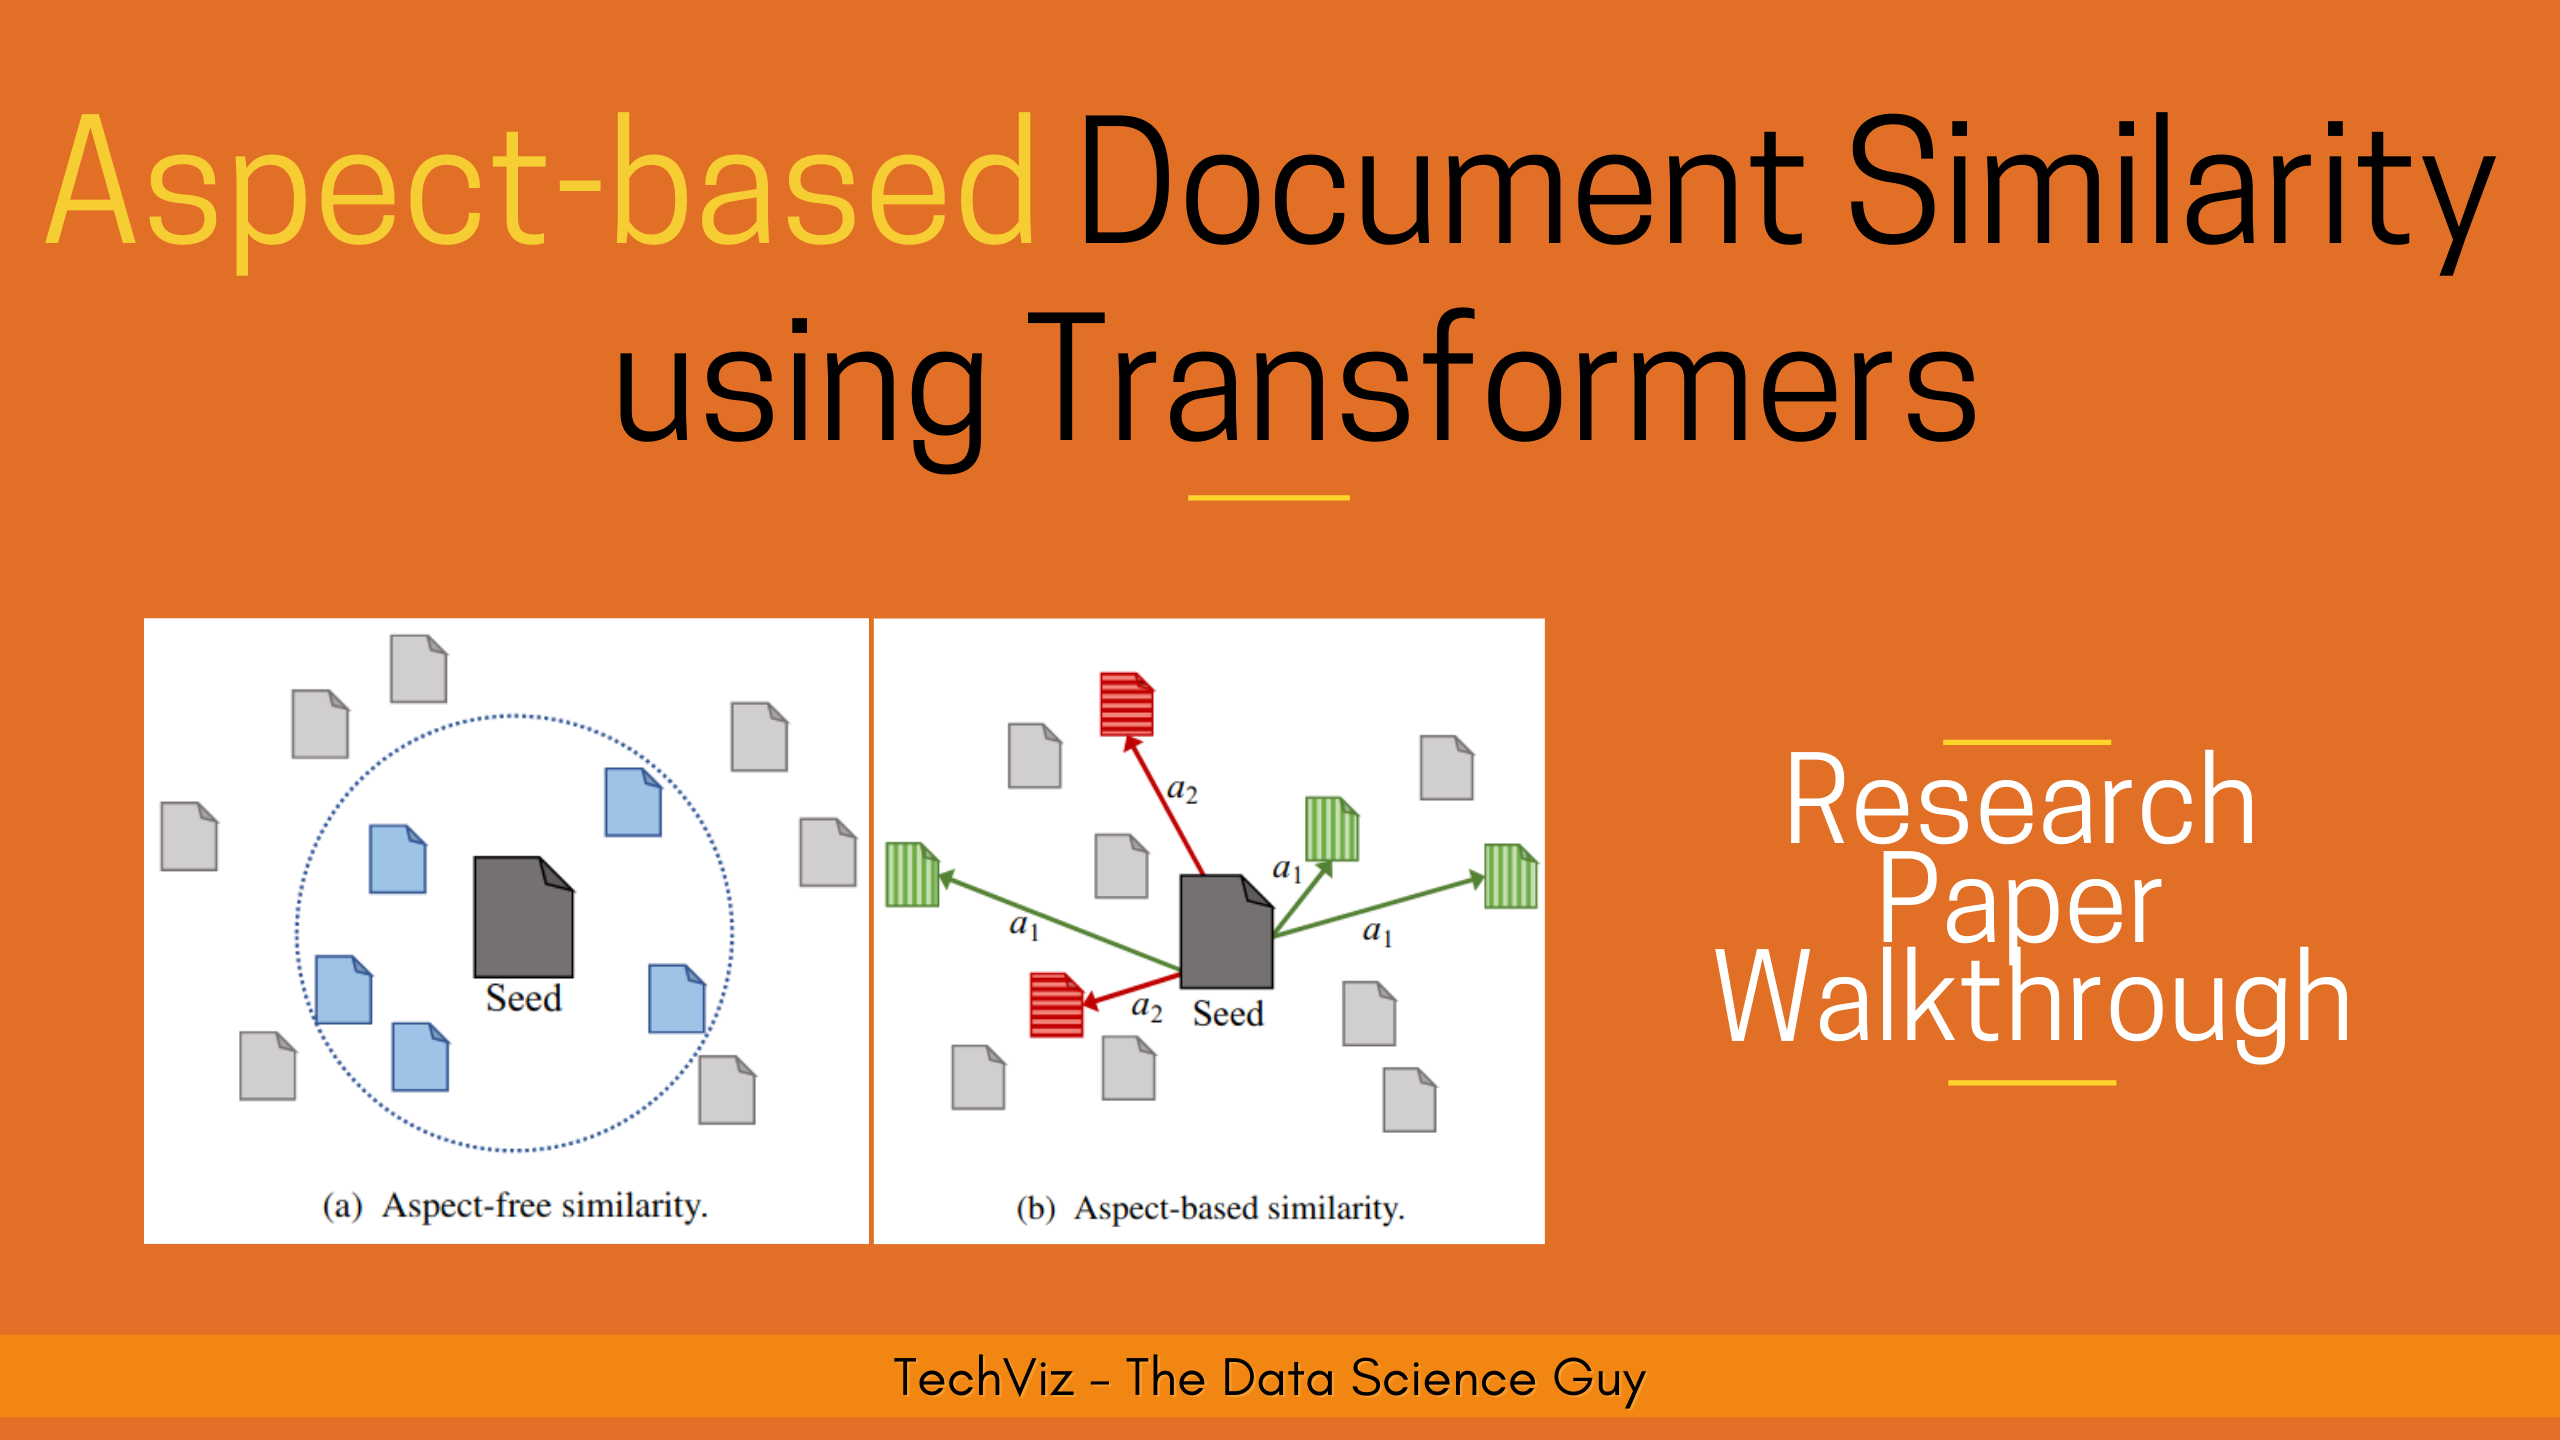 Image - based document similarity using transformers (study paper explanation)  Summary of NLP research article